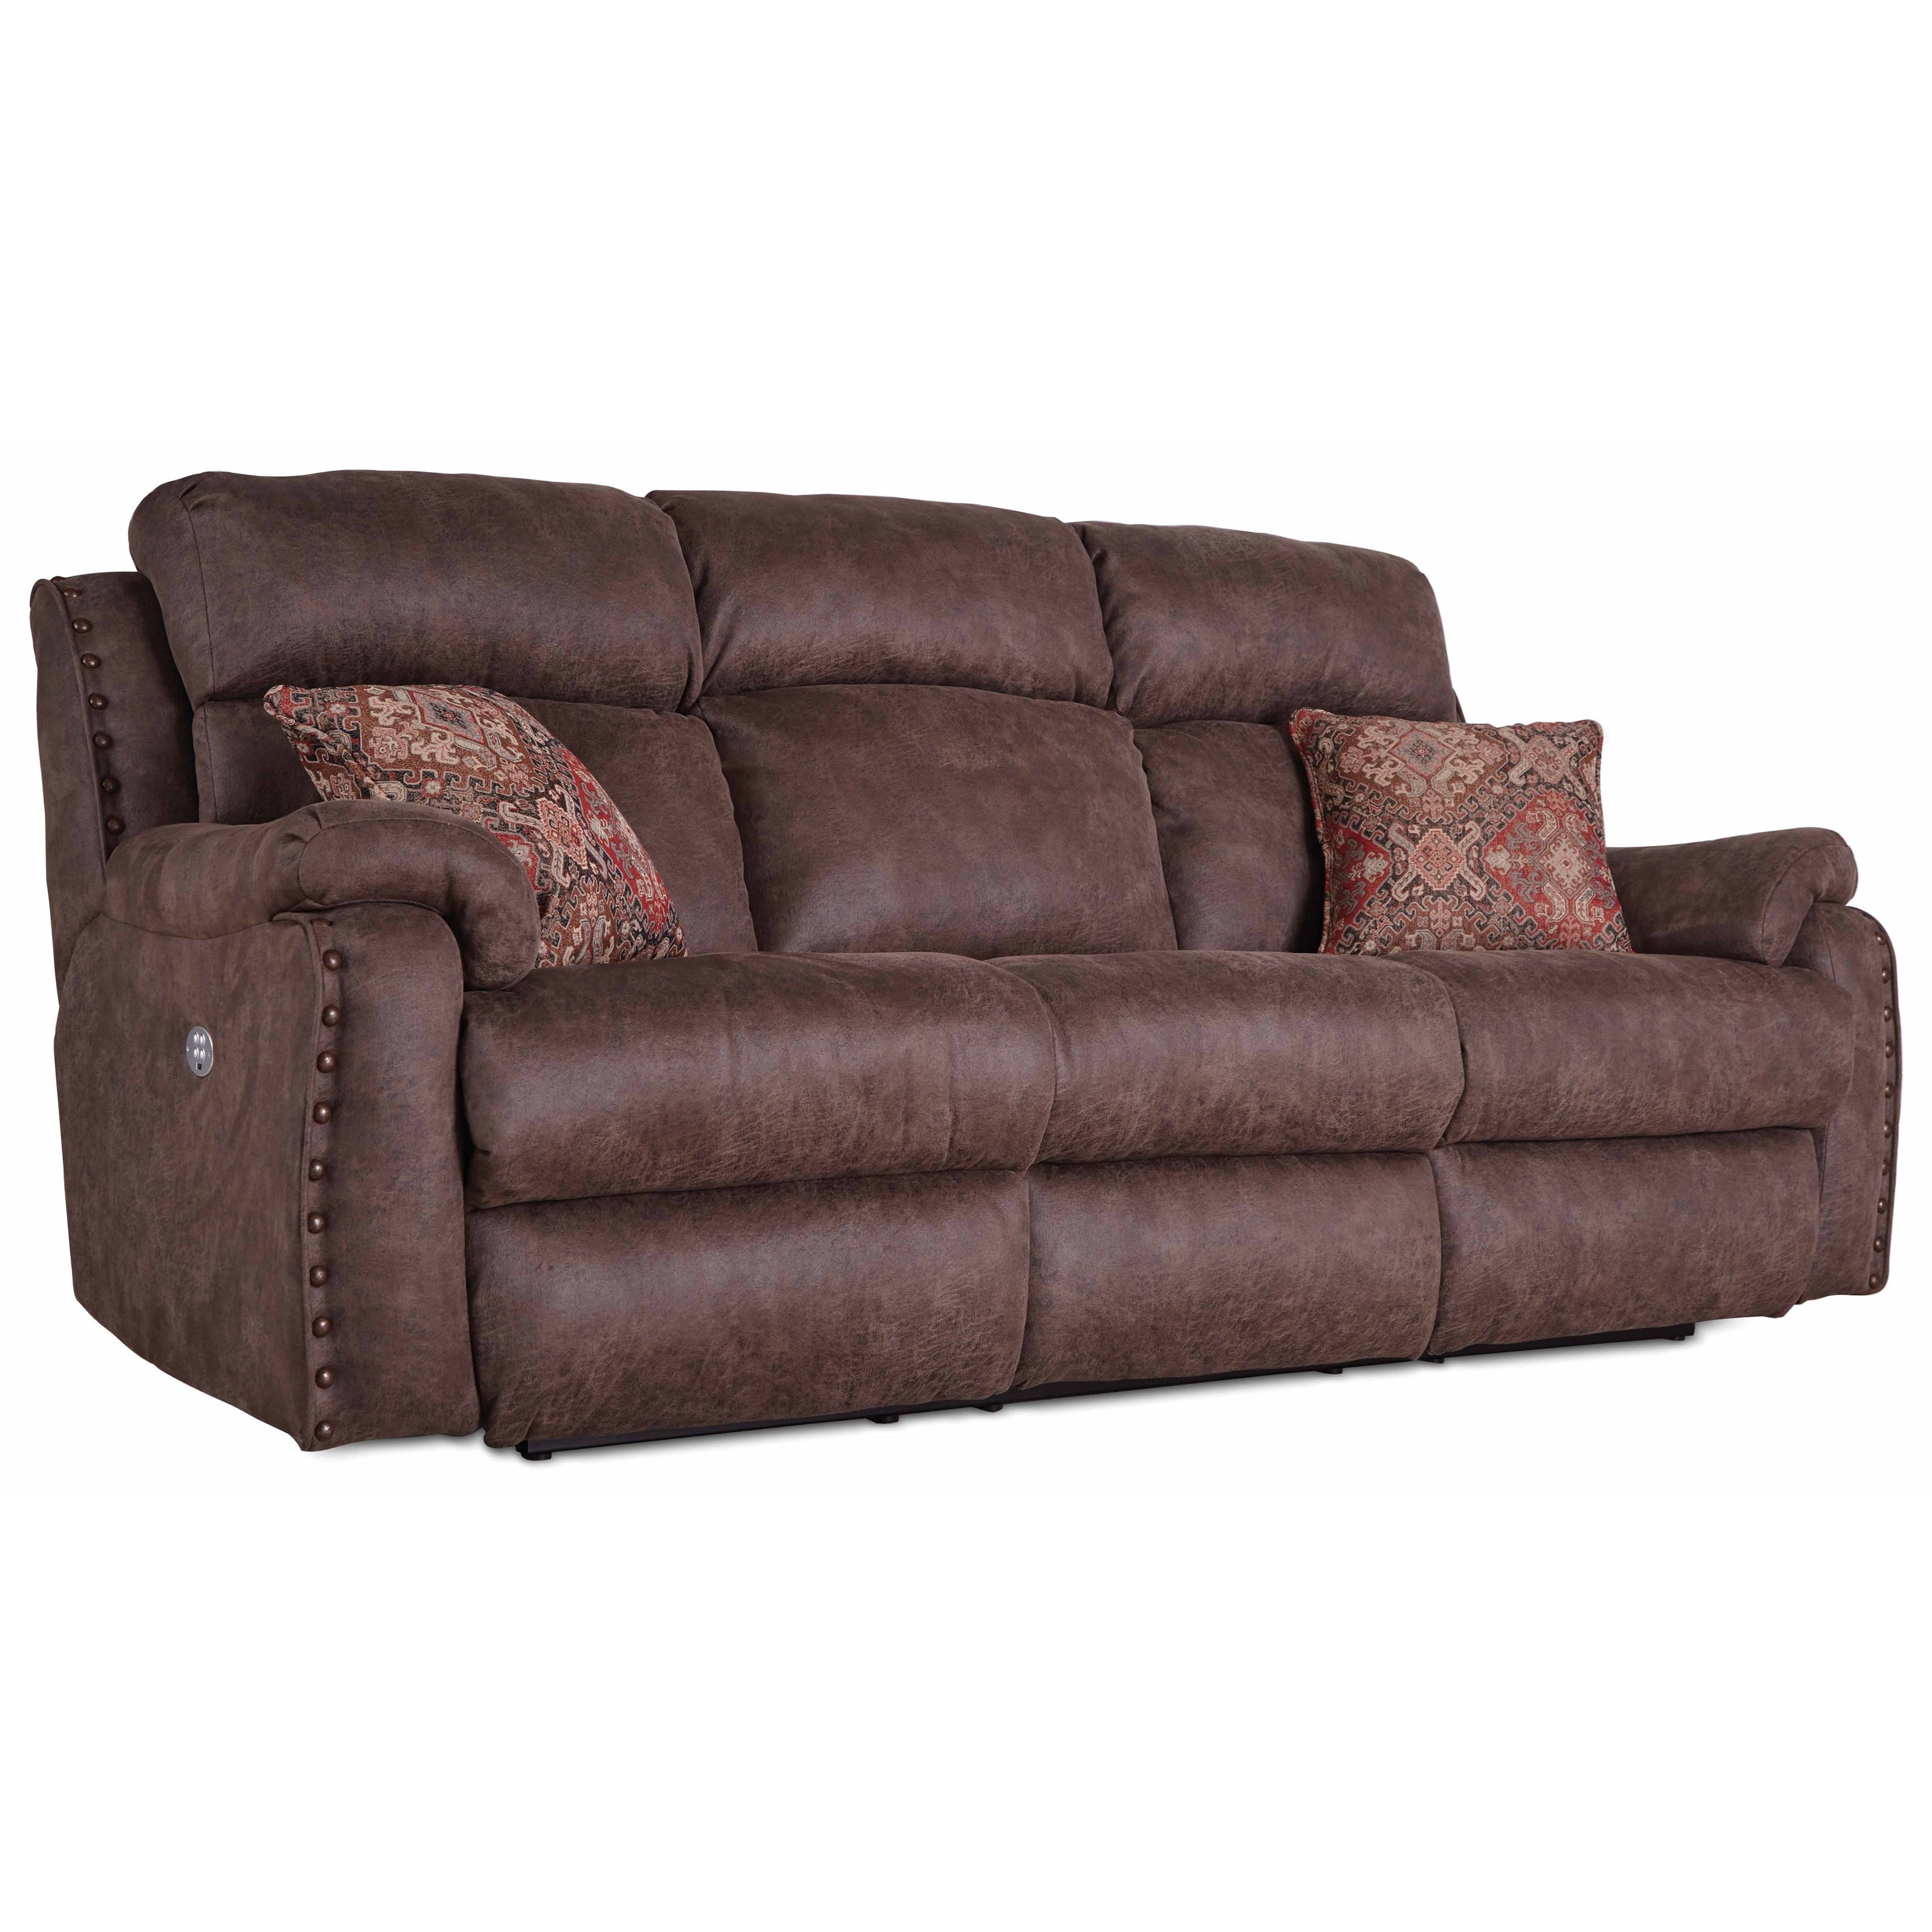 Dbl Recl Sofa w/ Pillows & Pwr Headrests